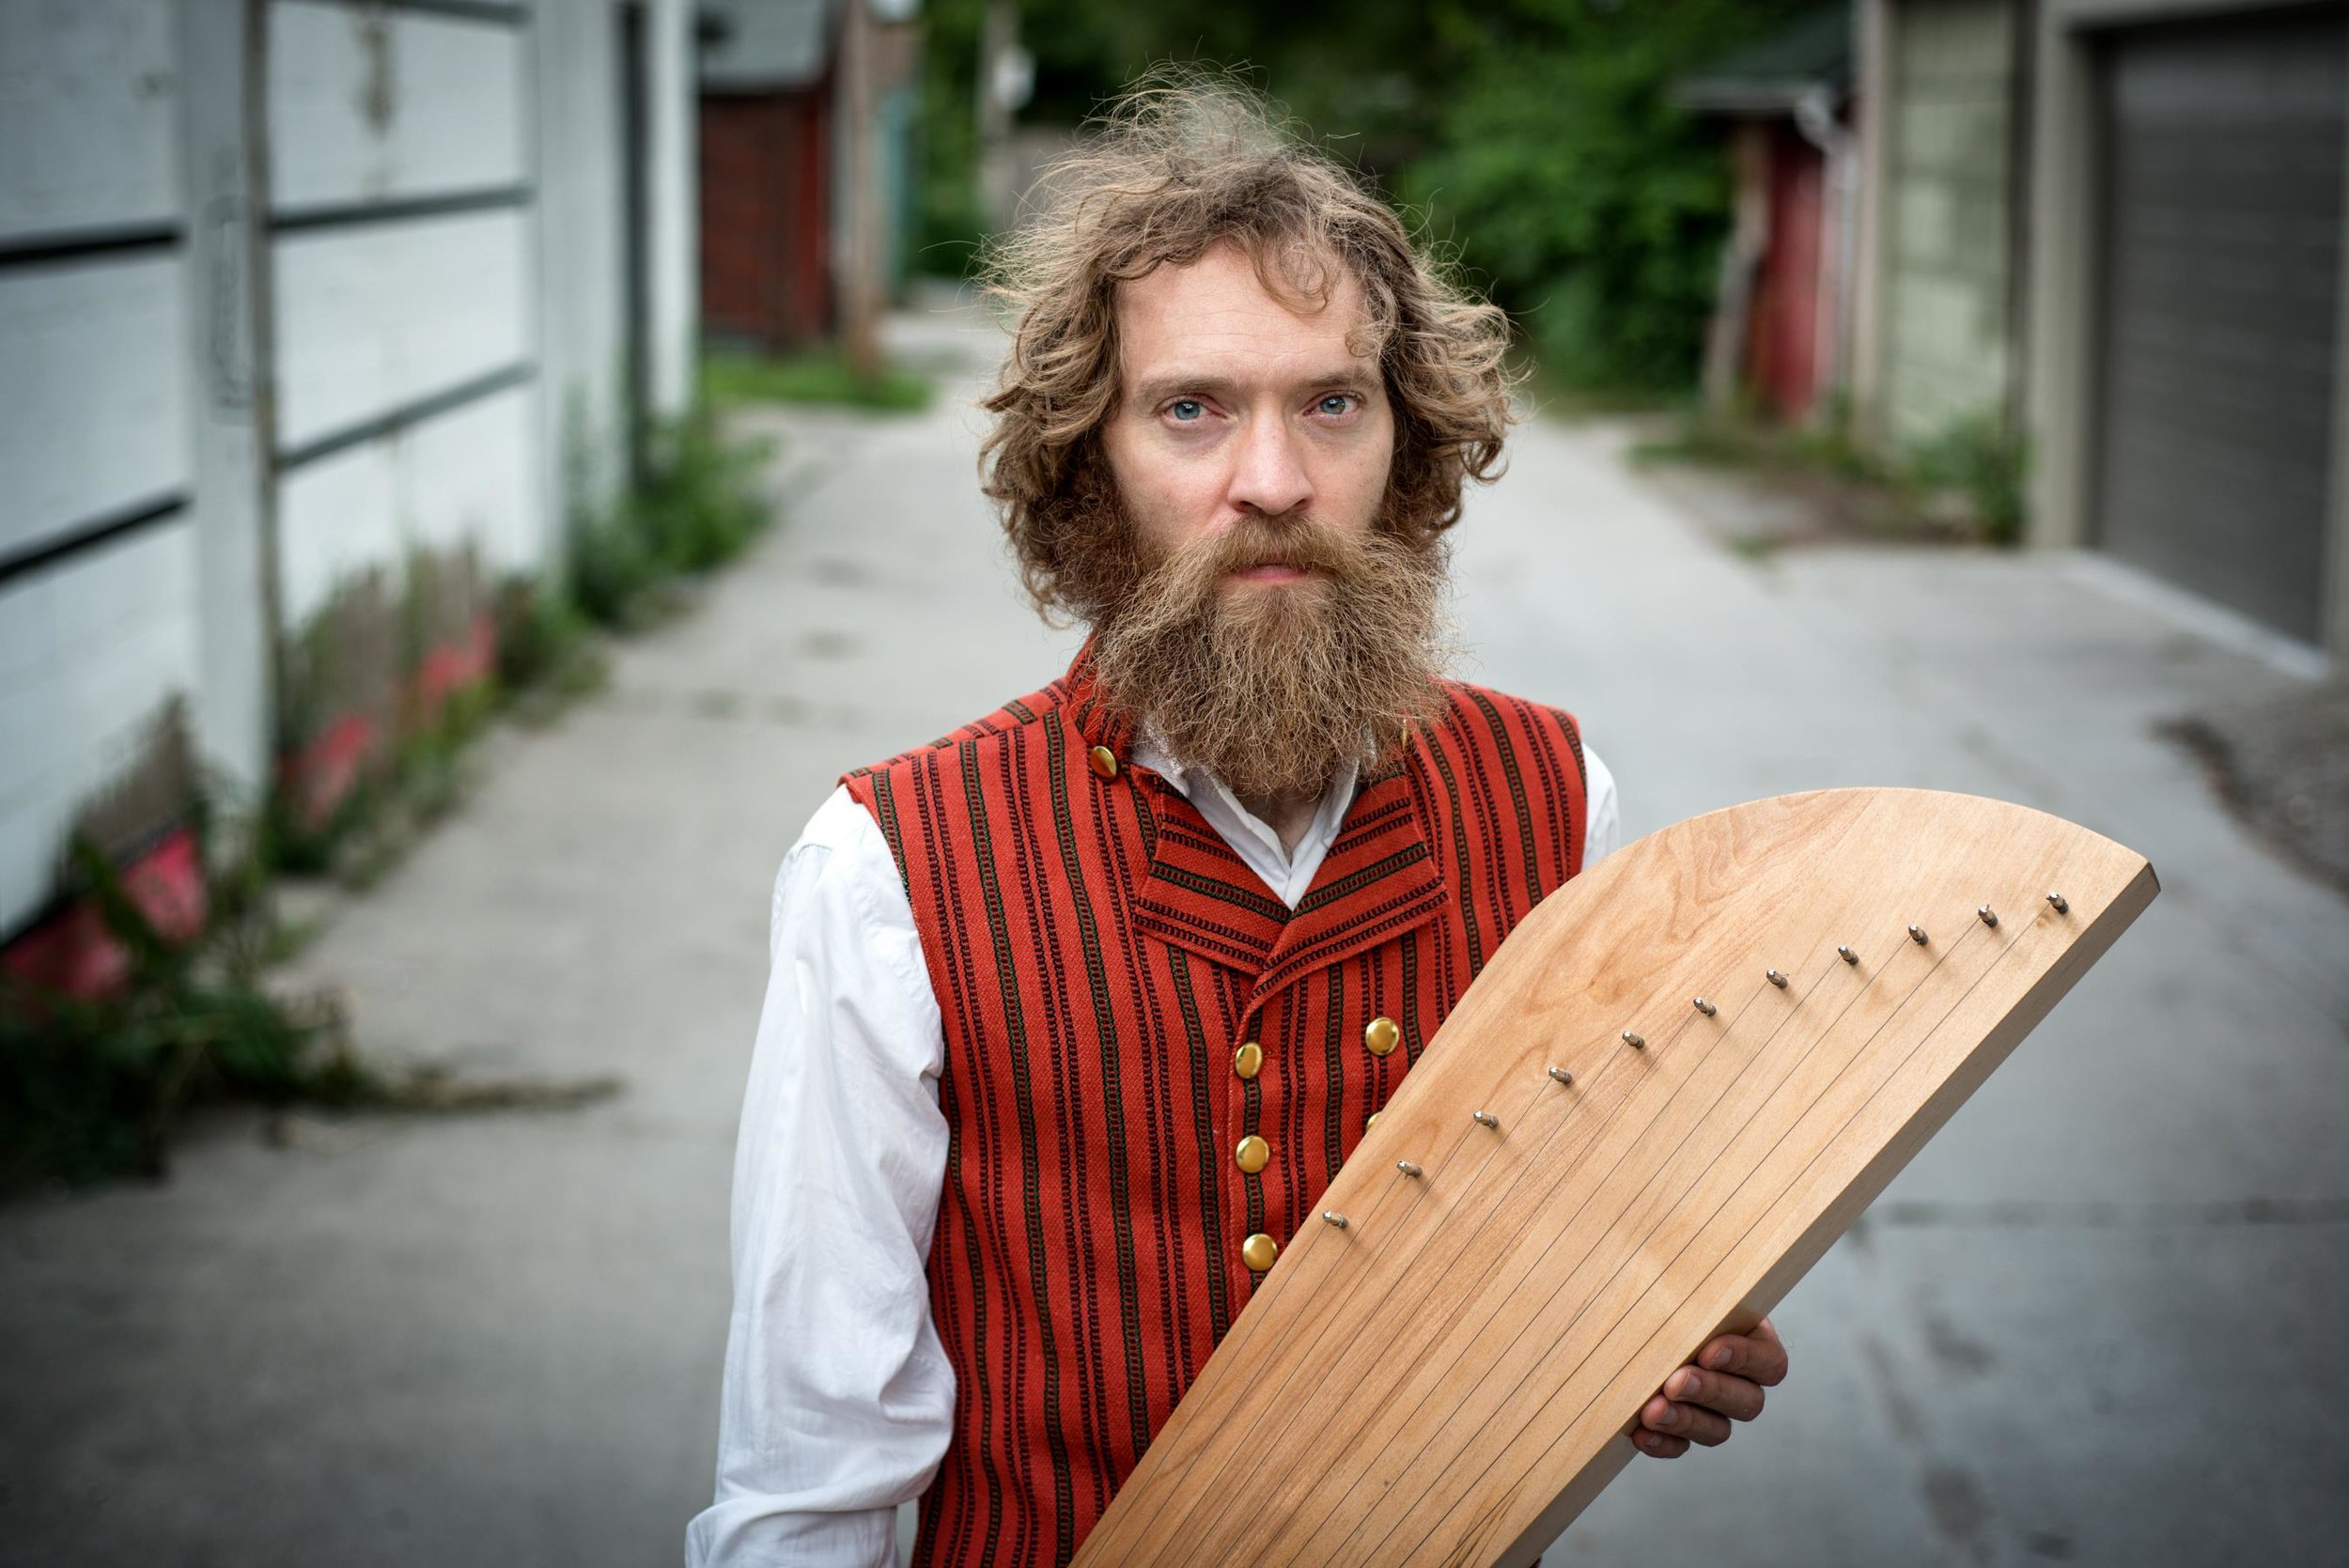 Musician and instrument maker Matti Palonen.